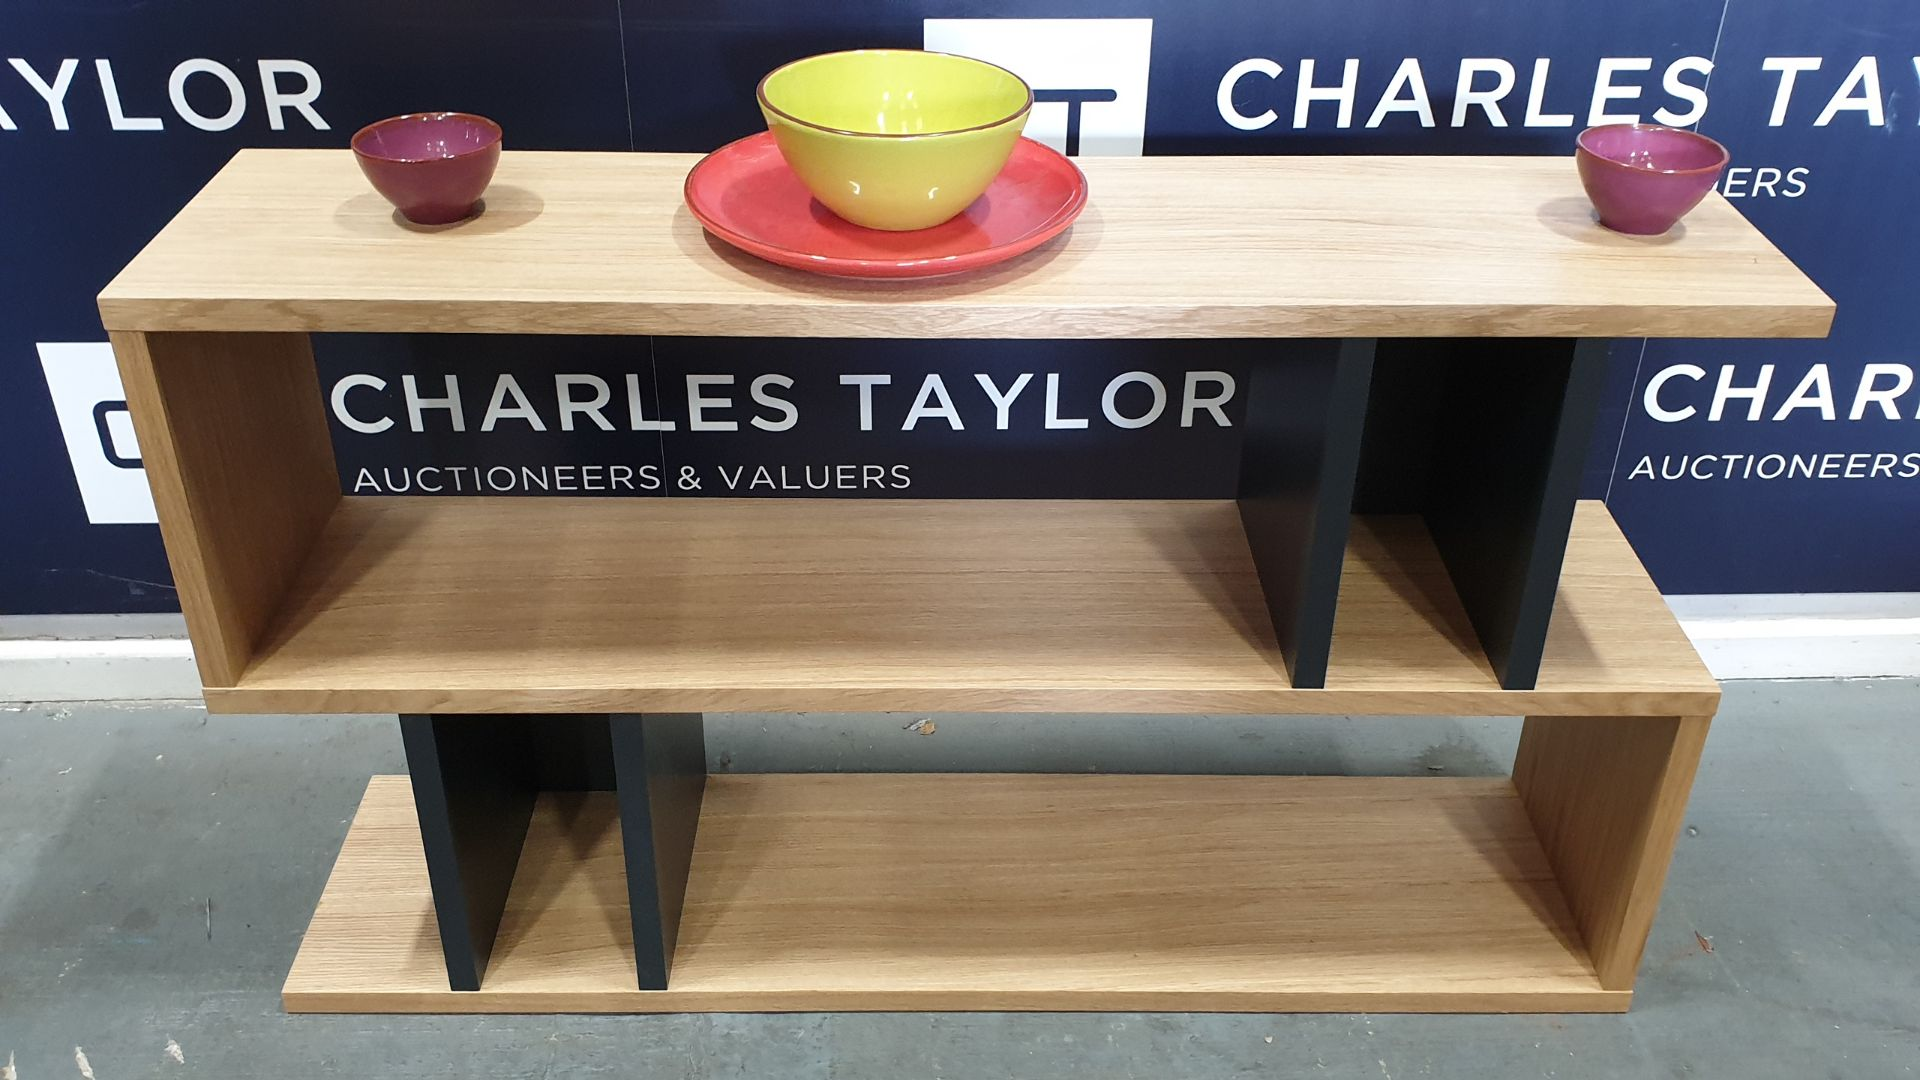 Lot 1117 - BRAND NEW CONTENT BY TERENCE CONRAN WOODEN COUNTER BALANCE, LOW SHELVING UNIT IN OAK/CHARCOAL - 30 X